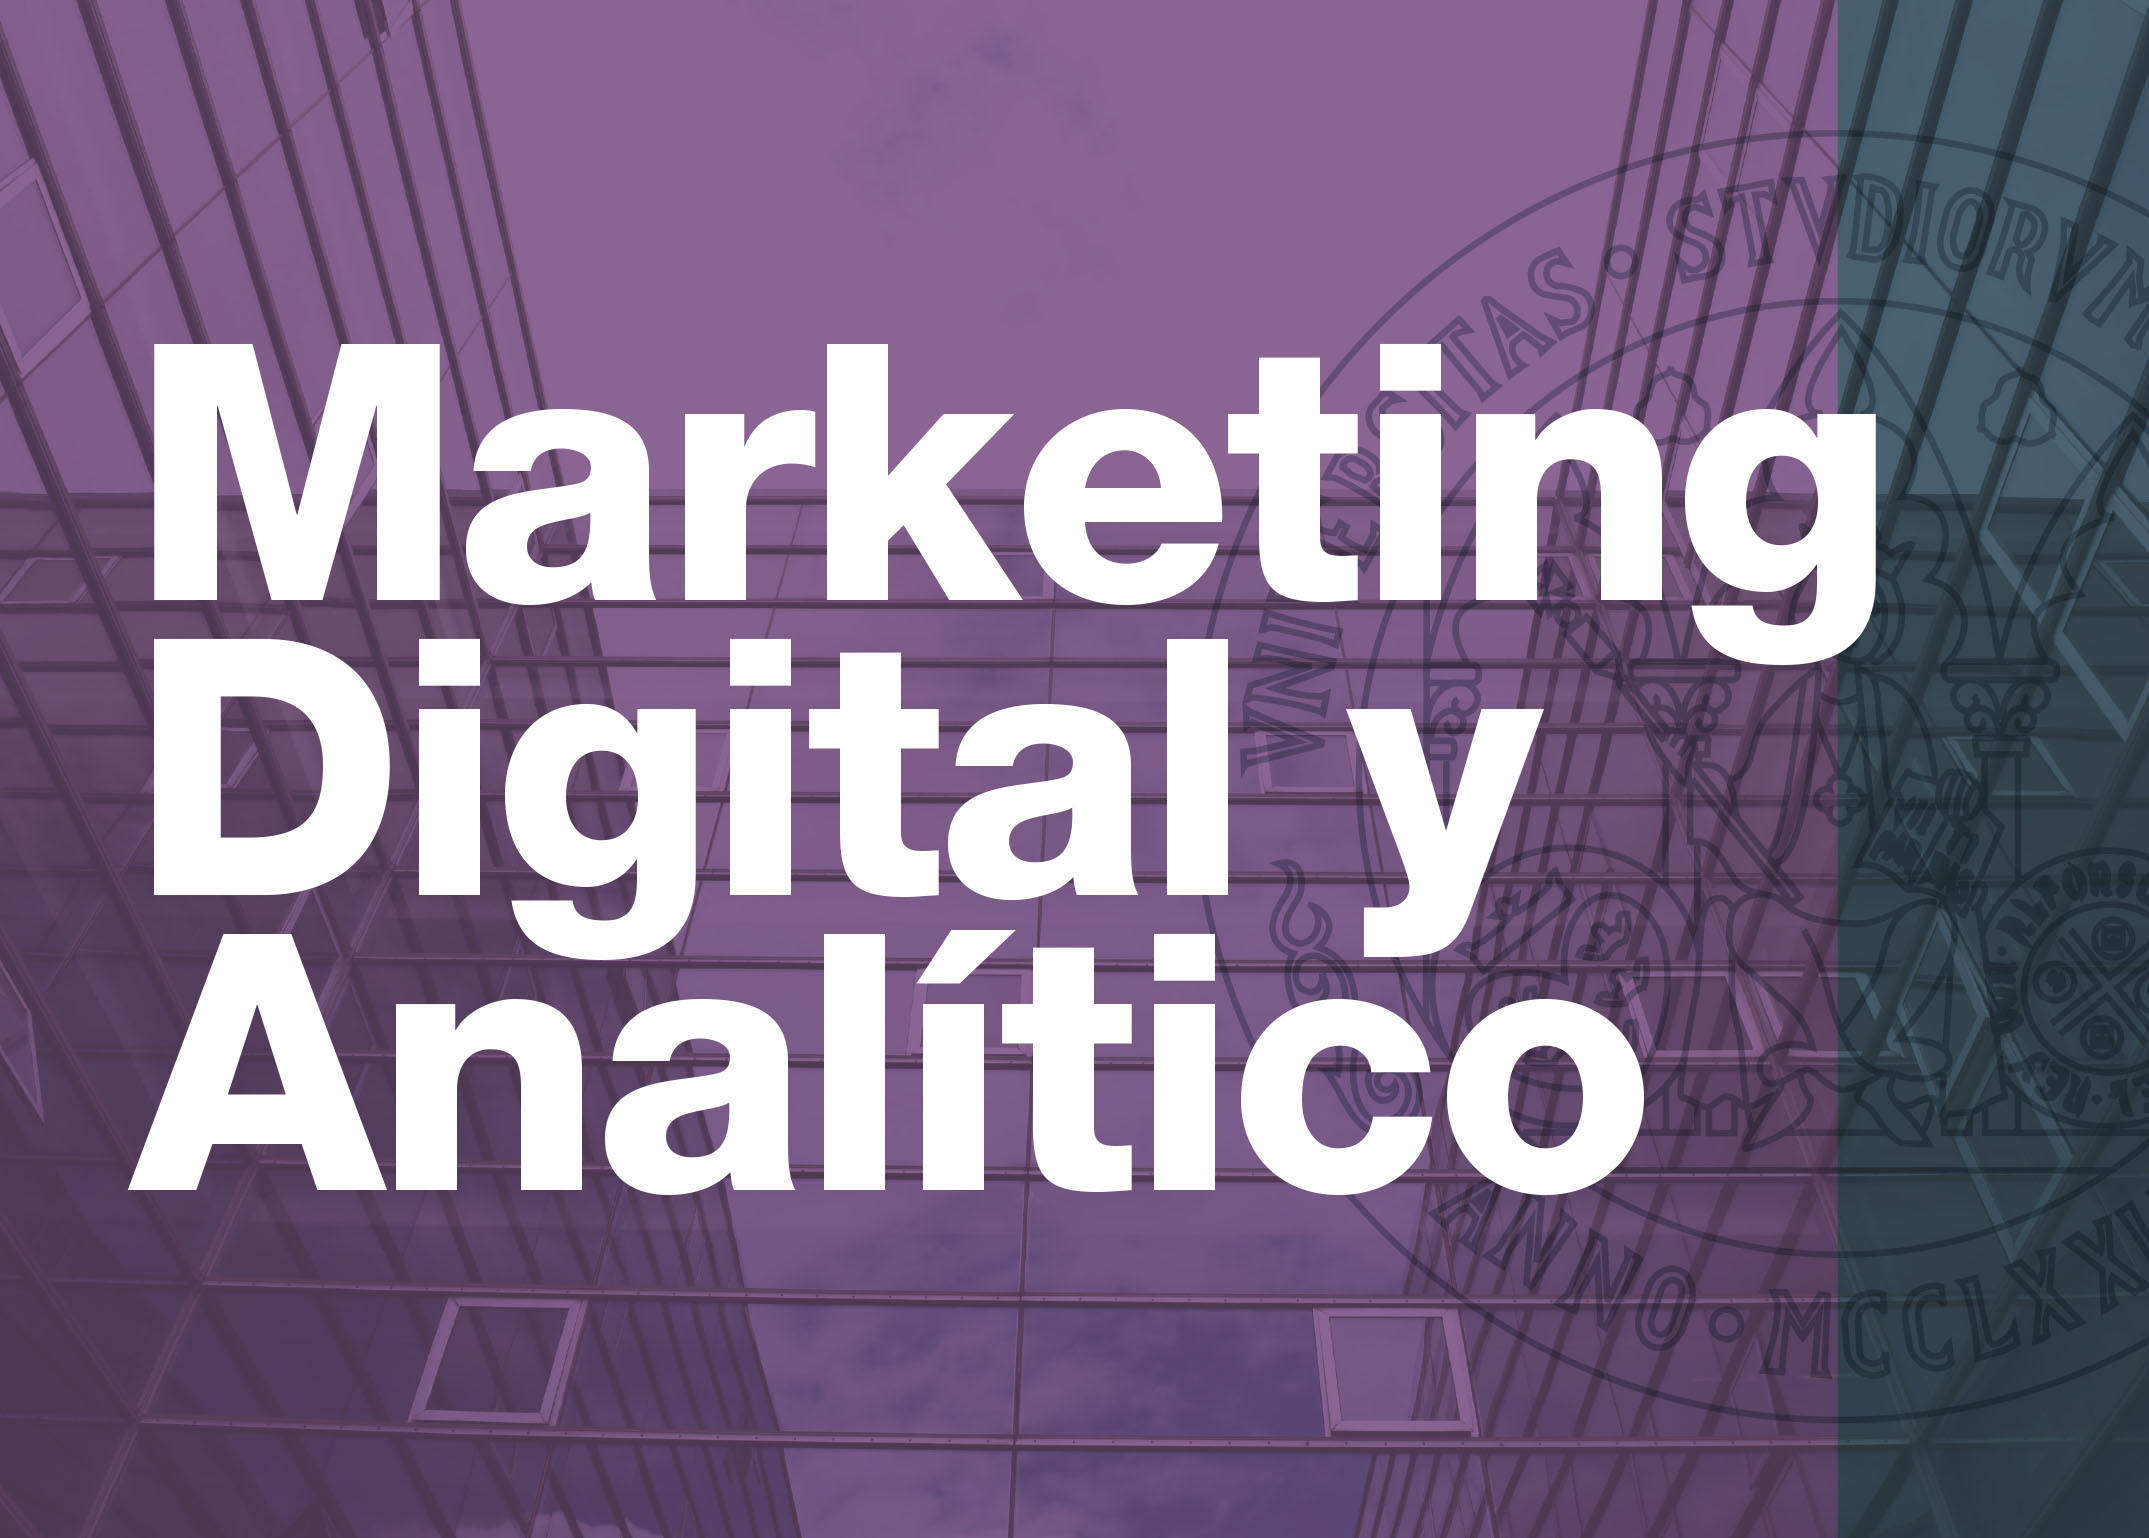 Marketing Digital y Analítico